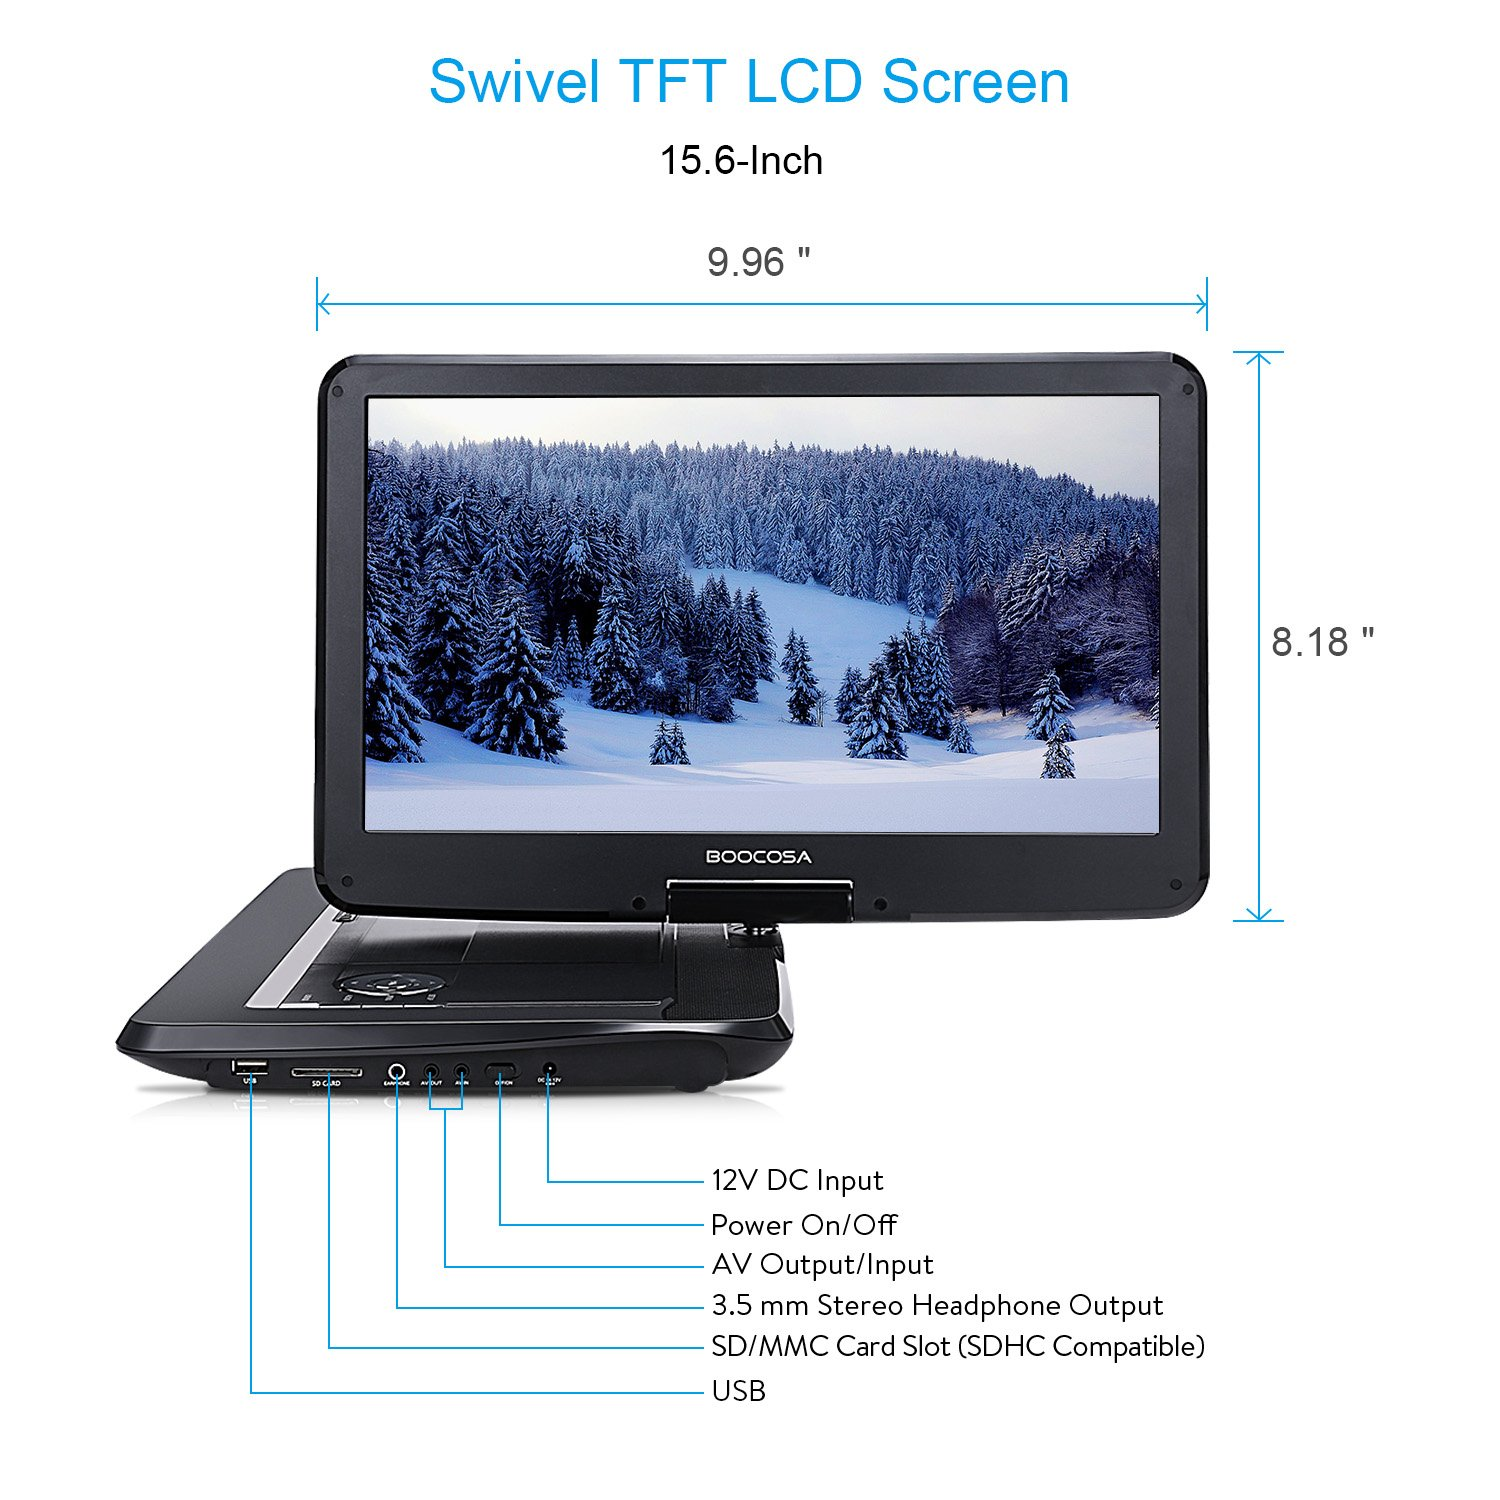 BOOCOSA Portable DVD Player with 270° Swivel TFT LCD Screen, Remote Control, Built-in 5 Hours Rechargeable Battery, Car Charger, AV Cable, Carrying Bag, CD/MMC Card Slot/USB (15.6 Inches, Black) by BOOCOSA (Image #2)